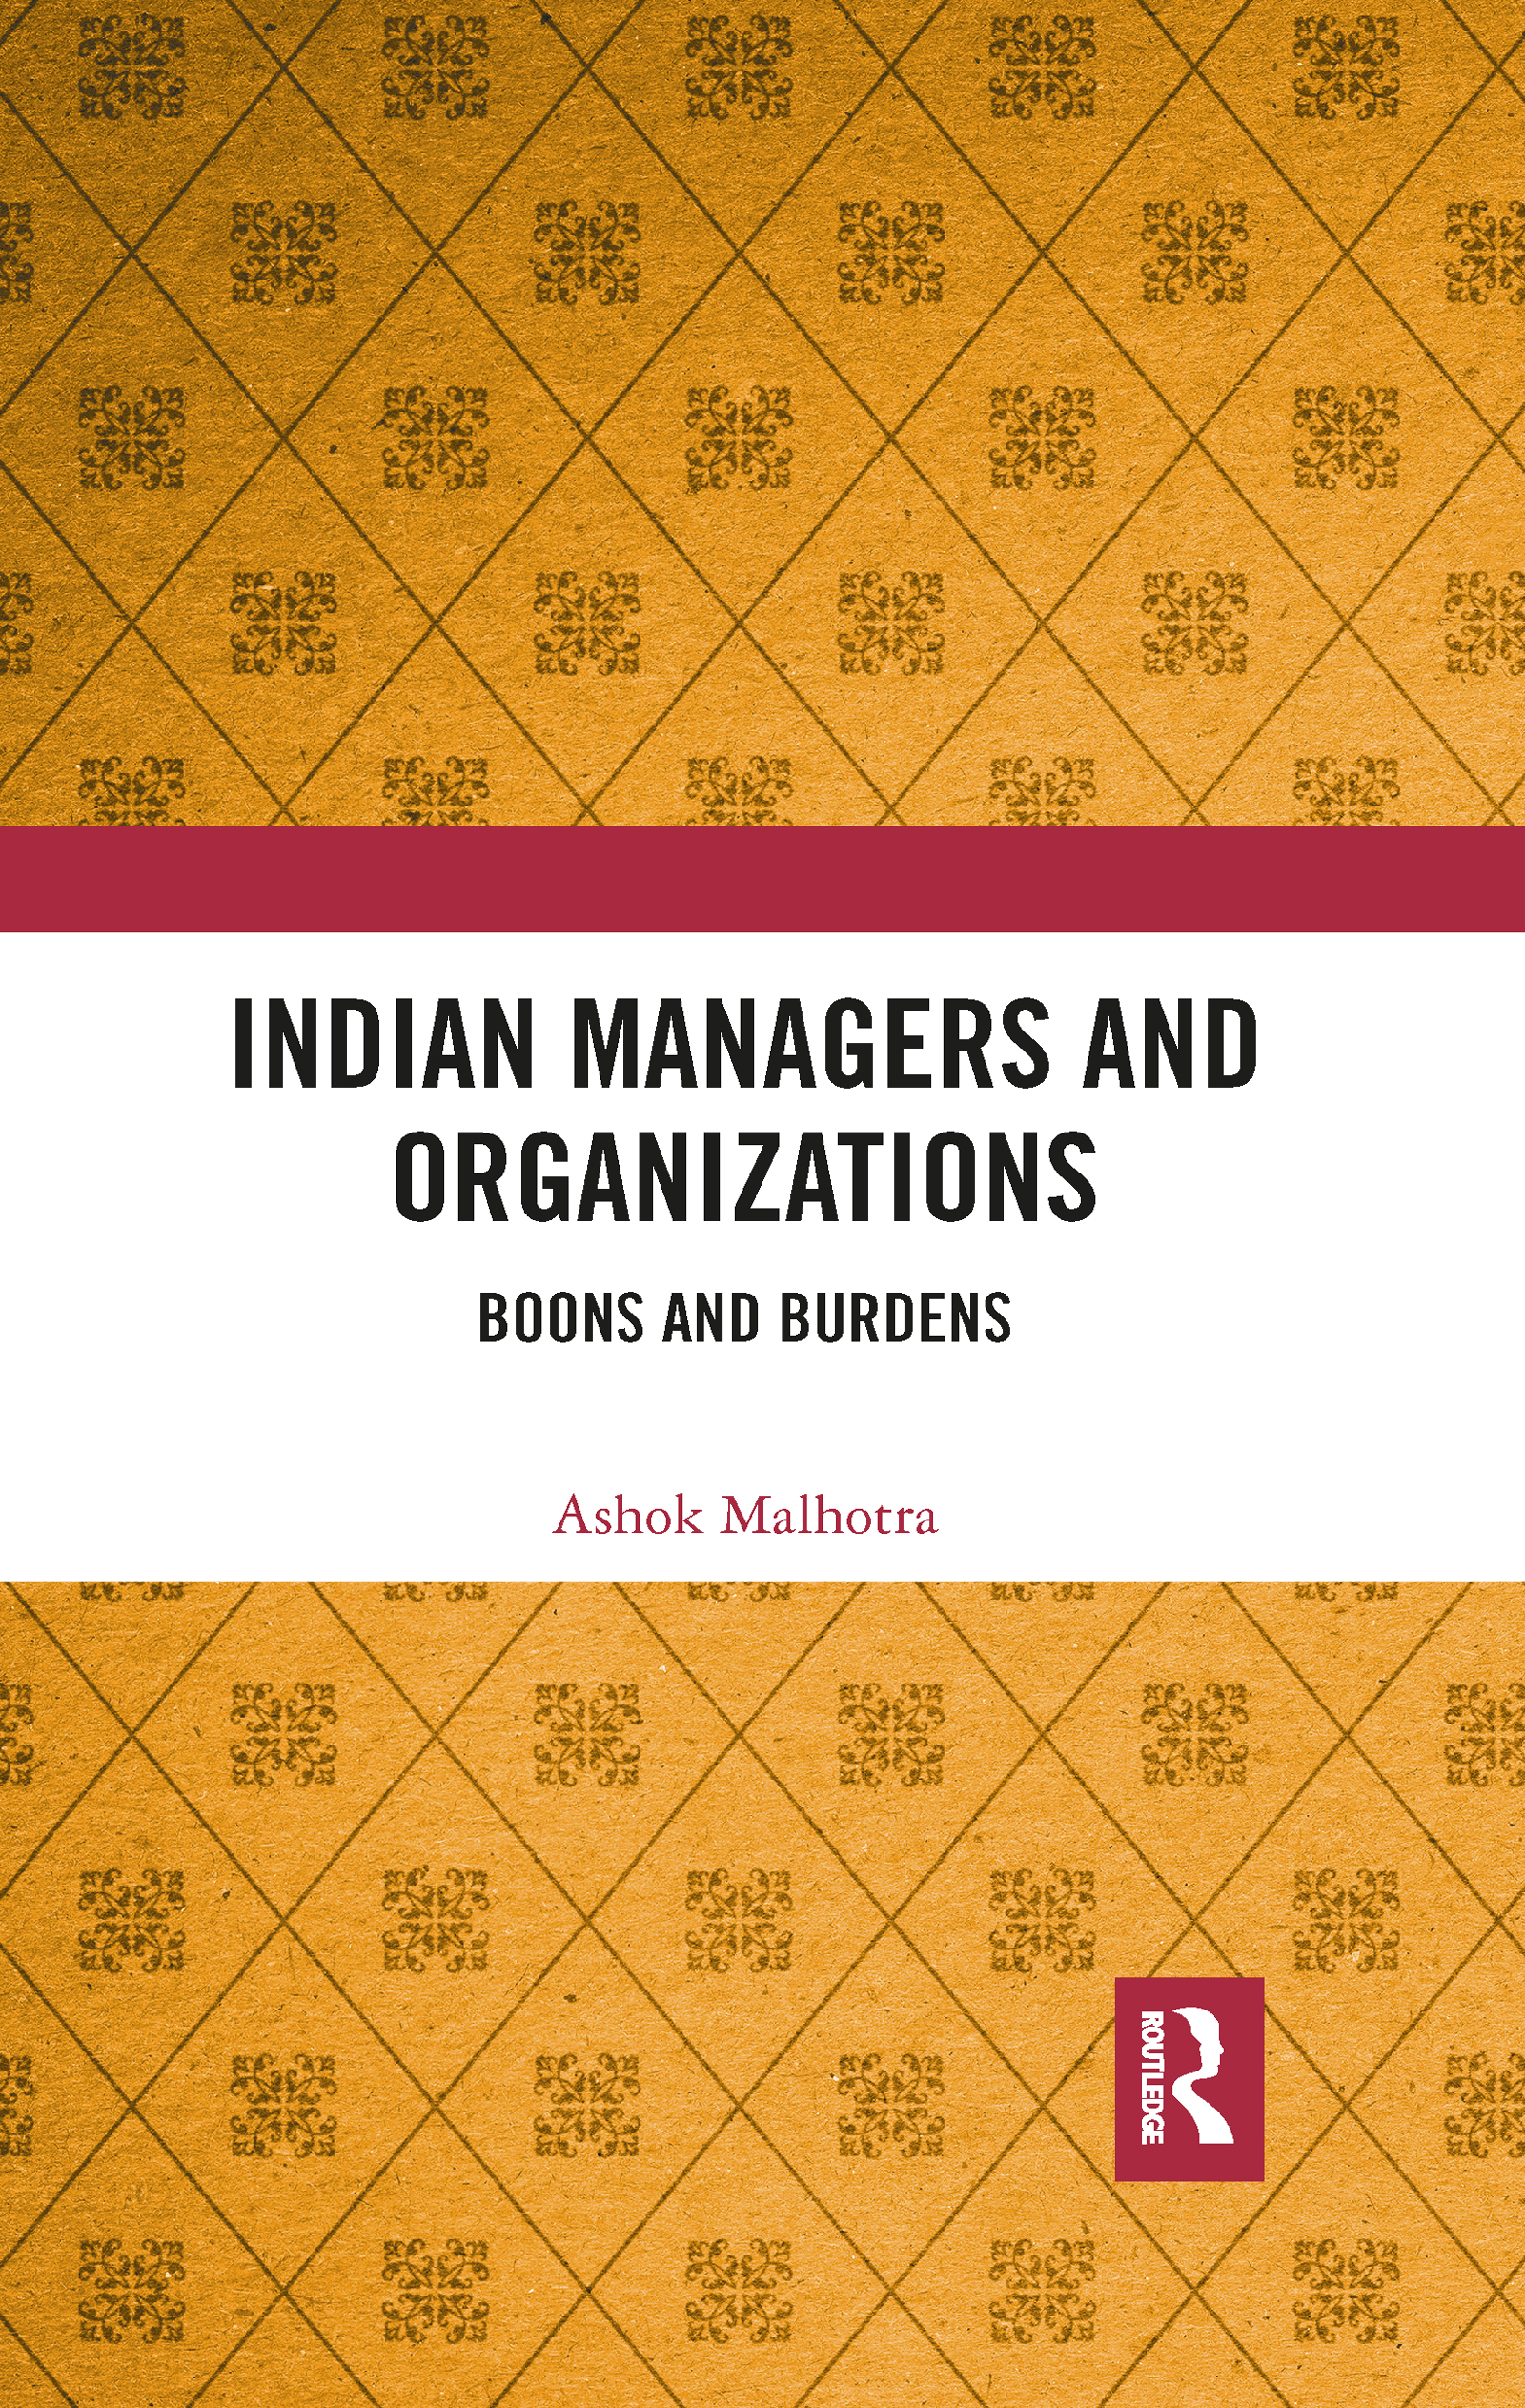 Indian Managers and Organizations